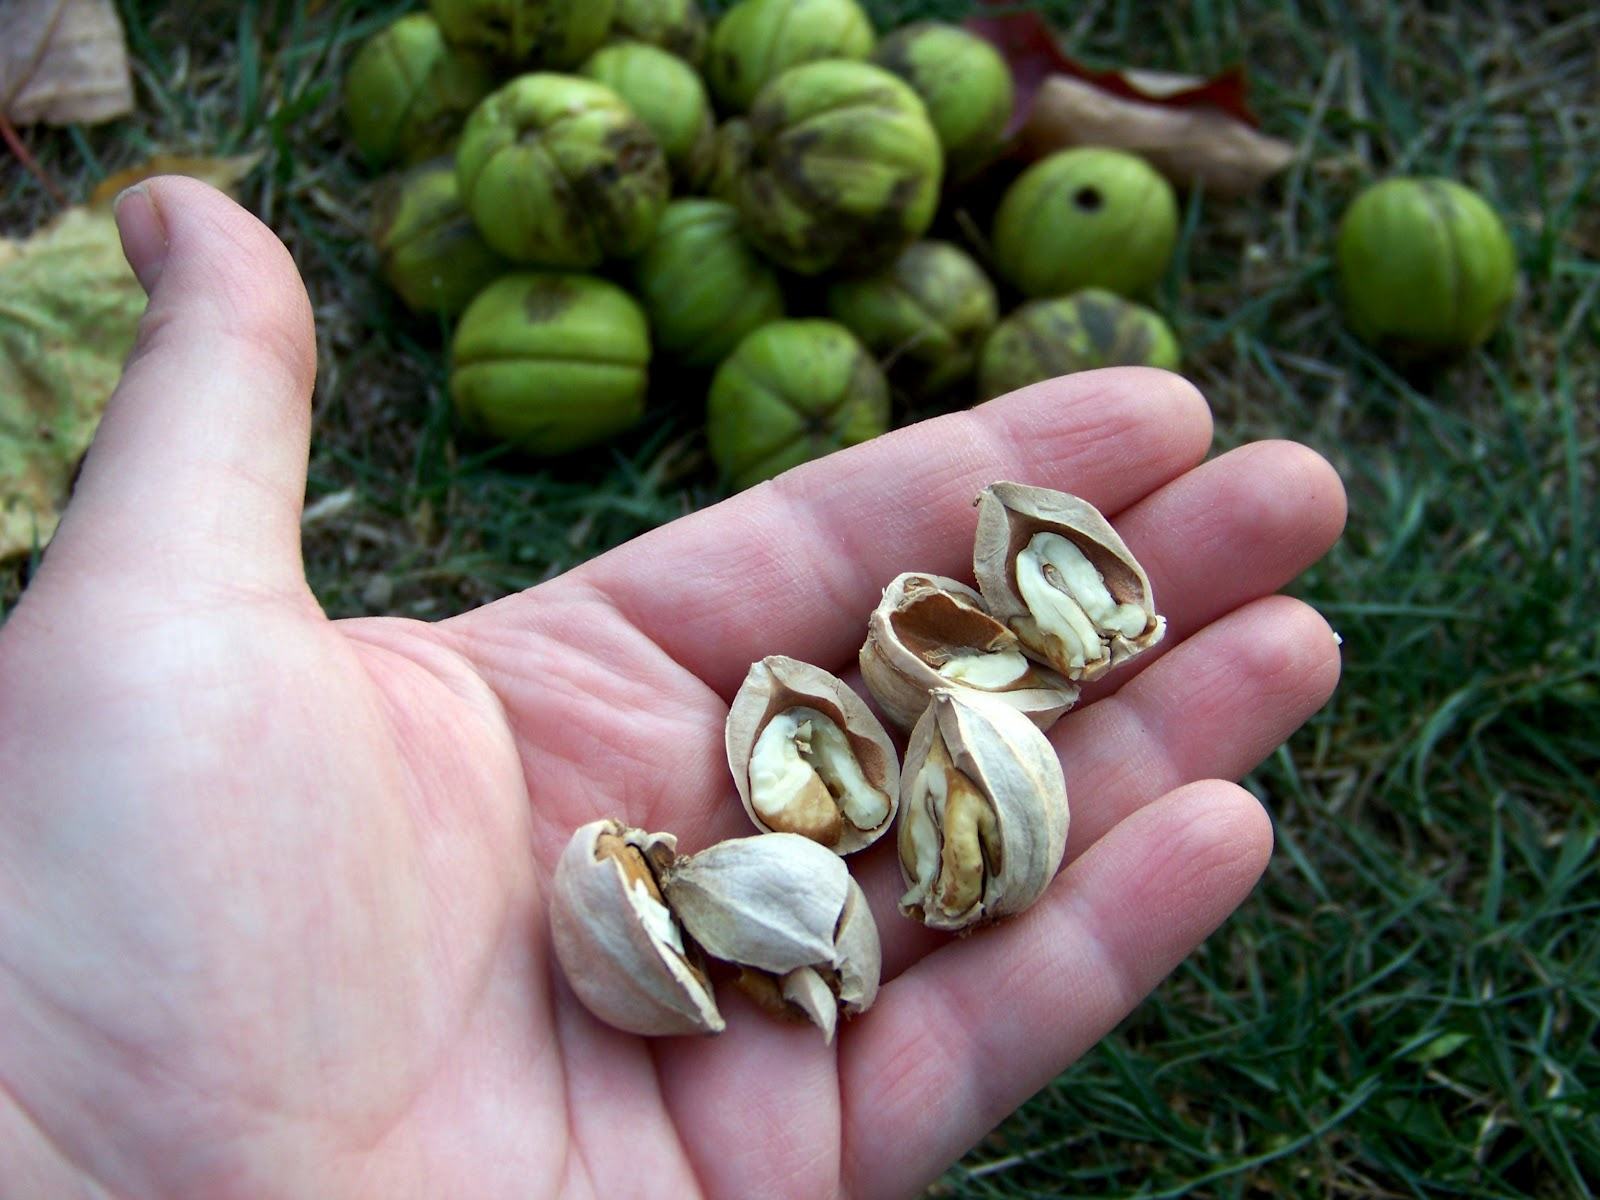 how to open hickory nuts